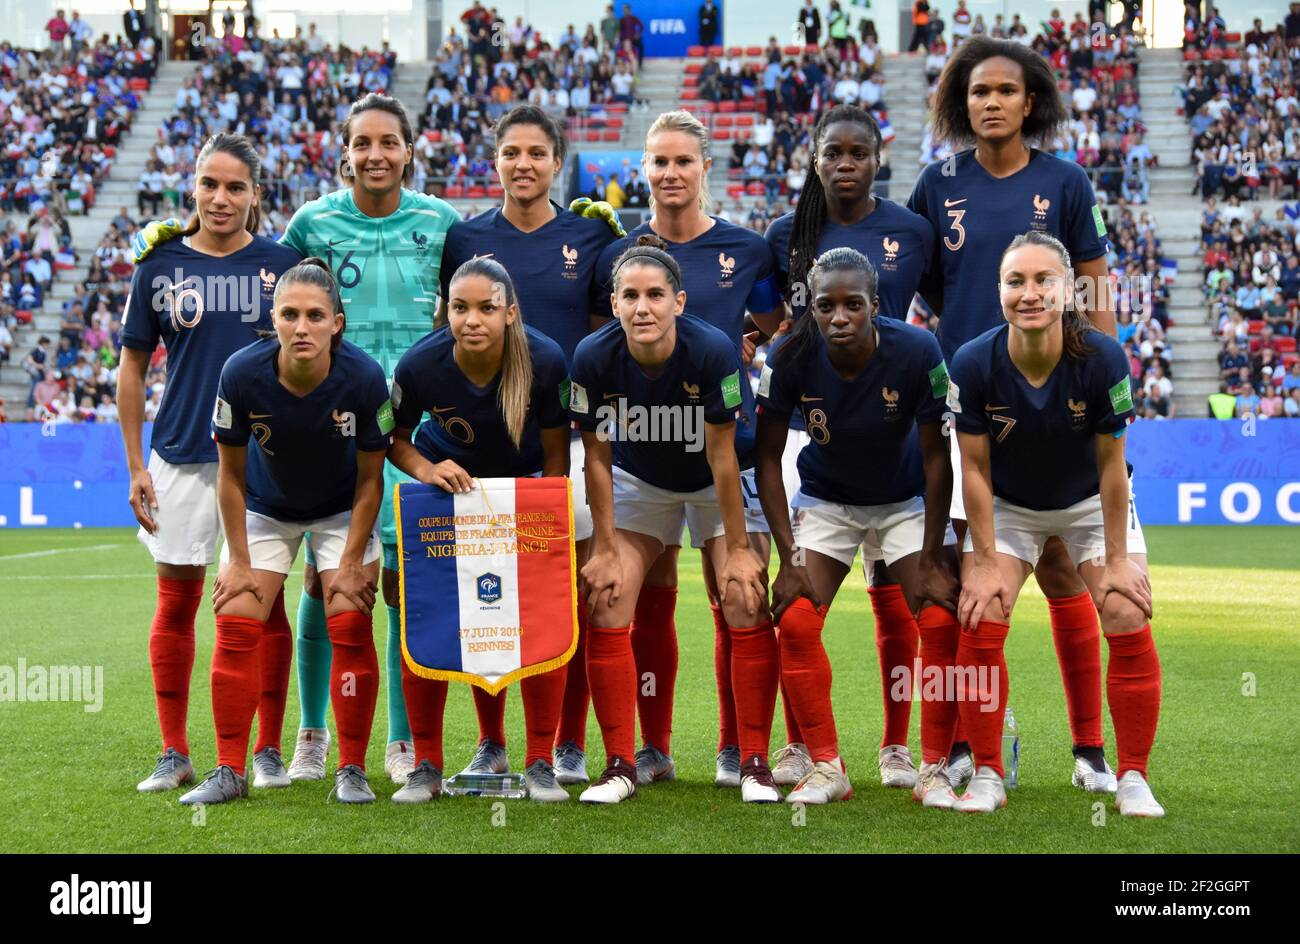 After years of working just as hard but for less, england's female team are getting paid equally. Fifa Womens World Cup France 2019 High Resolution Stock Photography And Images Alamy